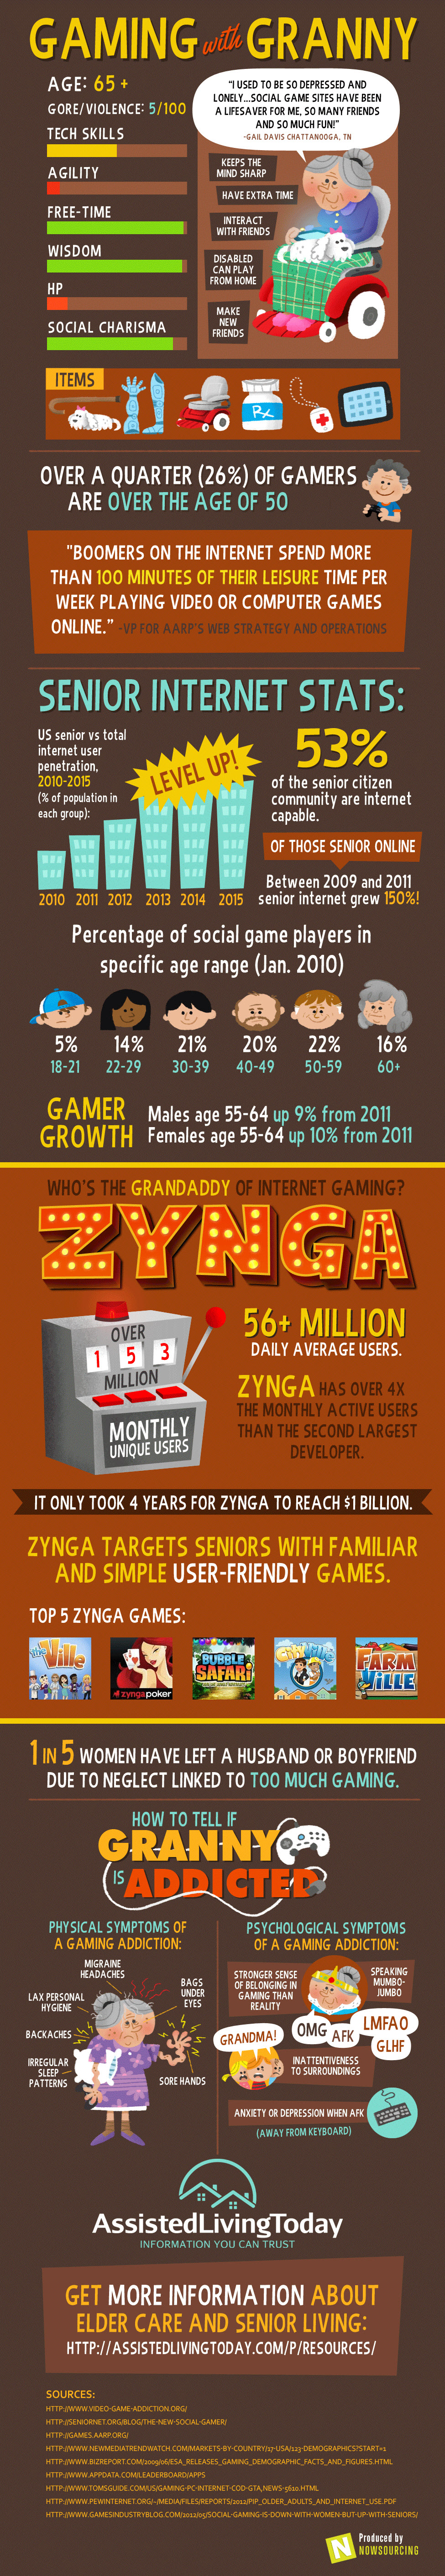 Gaming with Granny Gaming with Granny [Infographic]